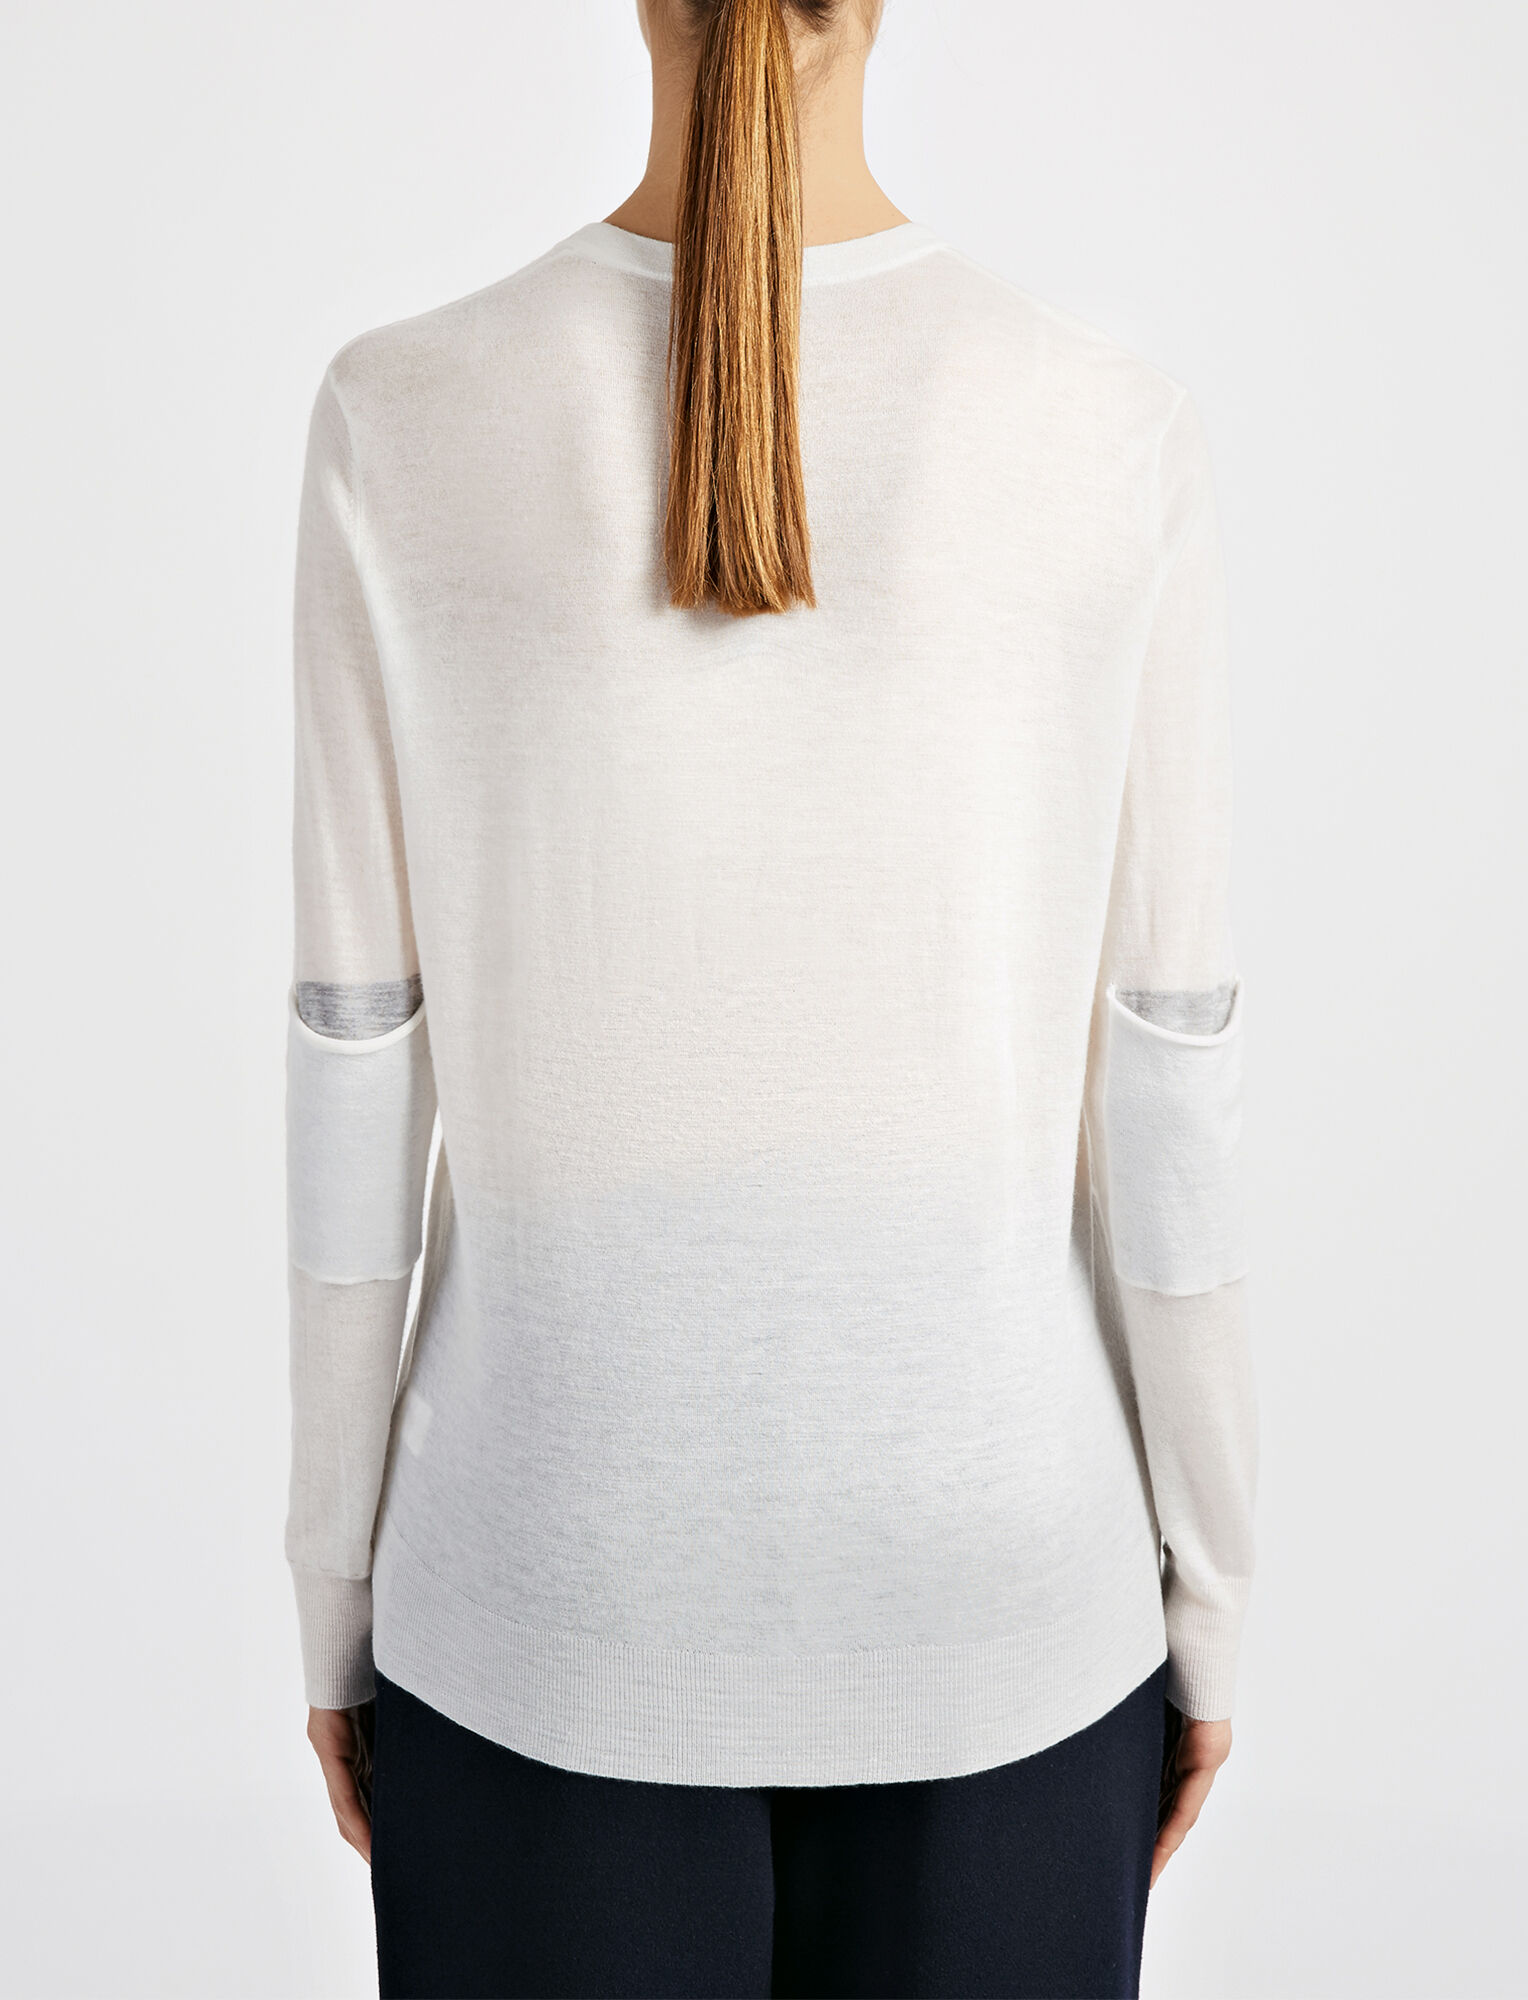 Joseph, Cashair and Patch V Neck Sweater, in BONE